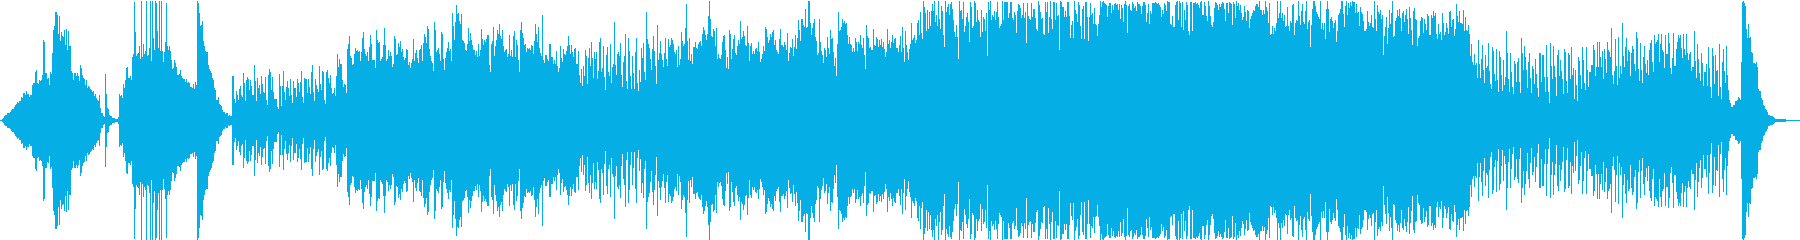 Japanese-style BGM for festivals and folklore's reproduced waveform